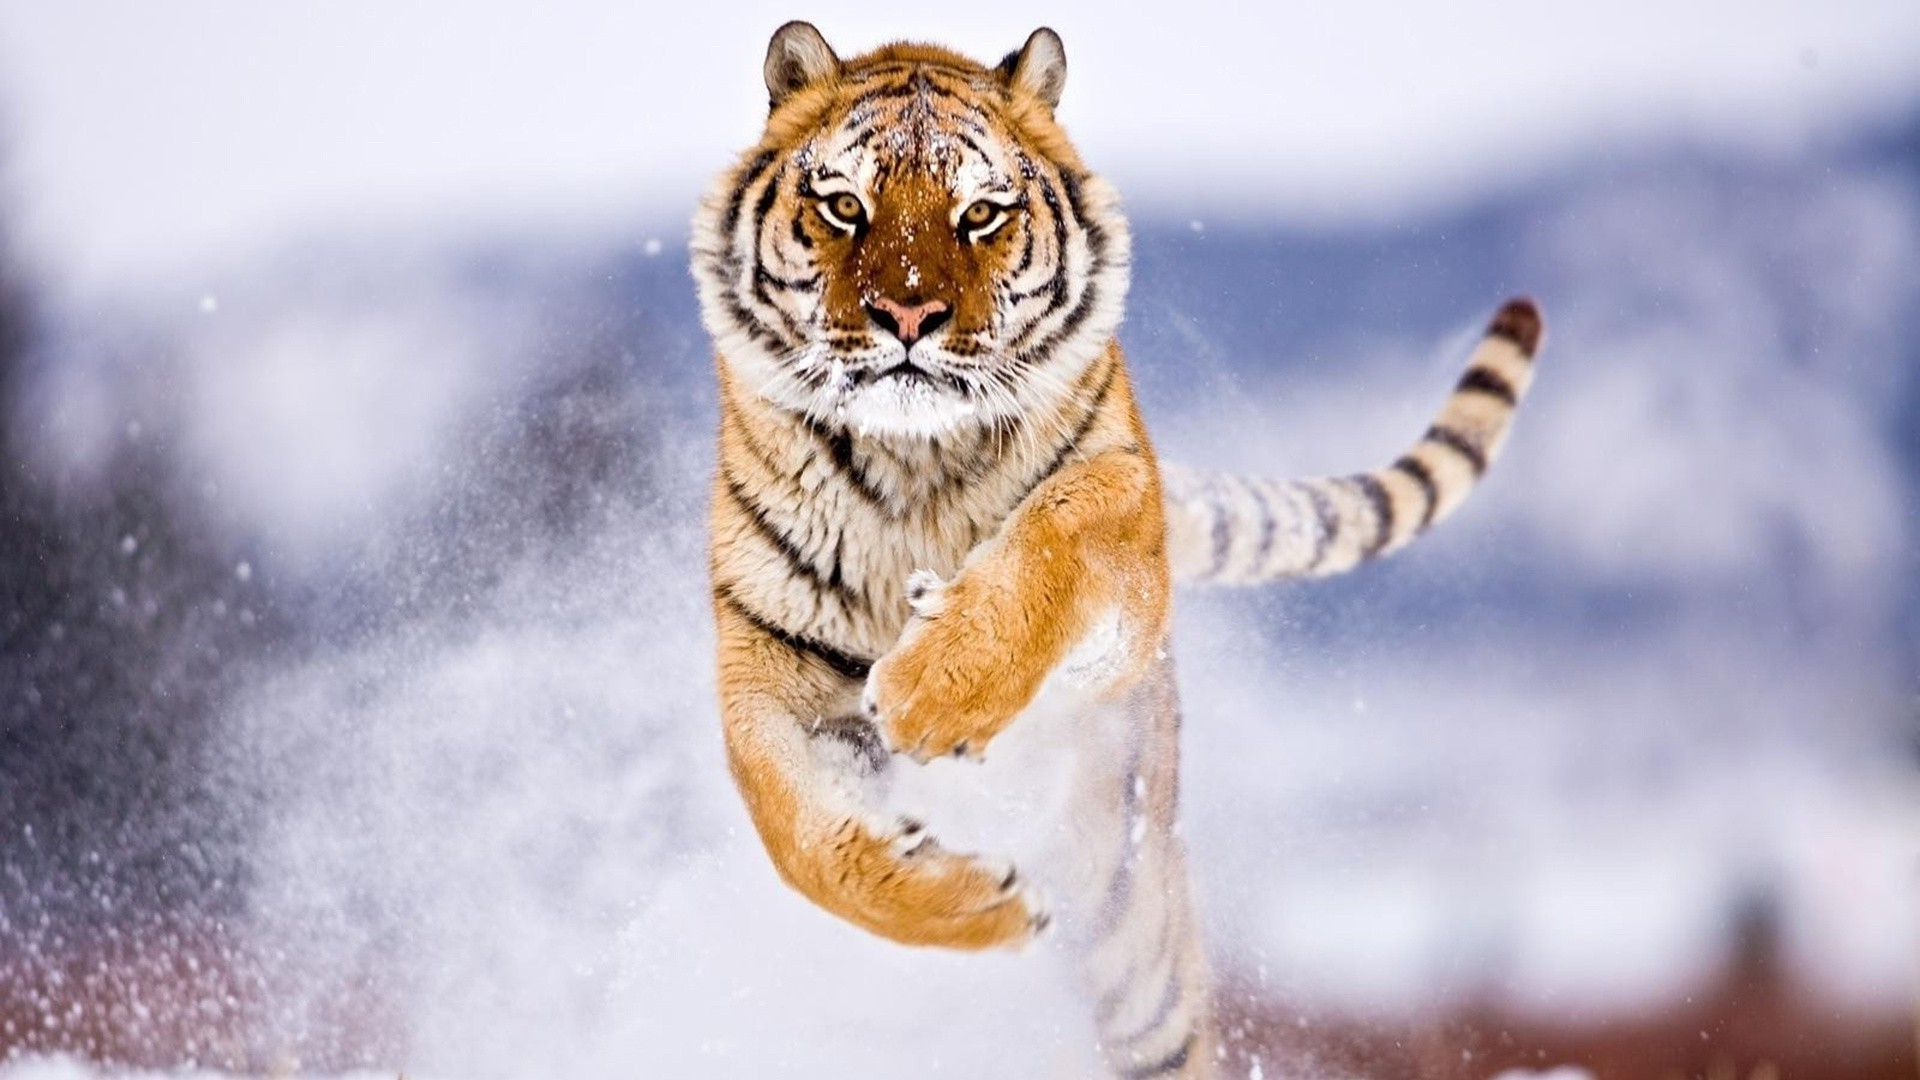 10 Top Cute Wild Animal Wallpaper Full Hd 1080p For Pc: Siberian Tiger Wallpapers (59+ Images